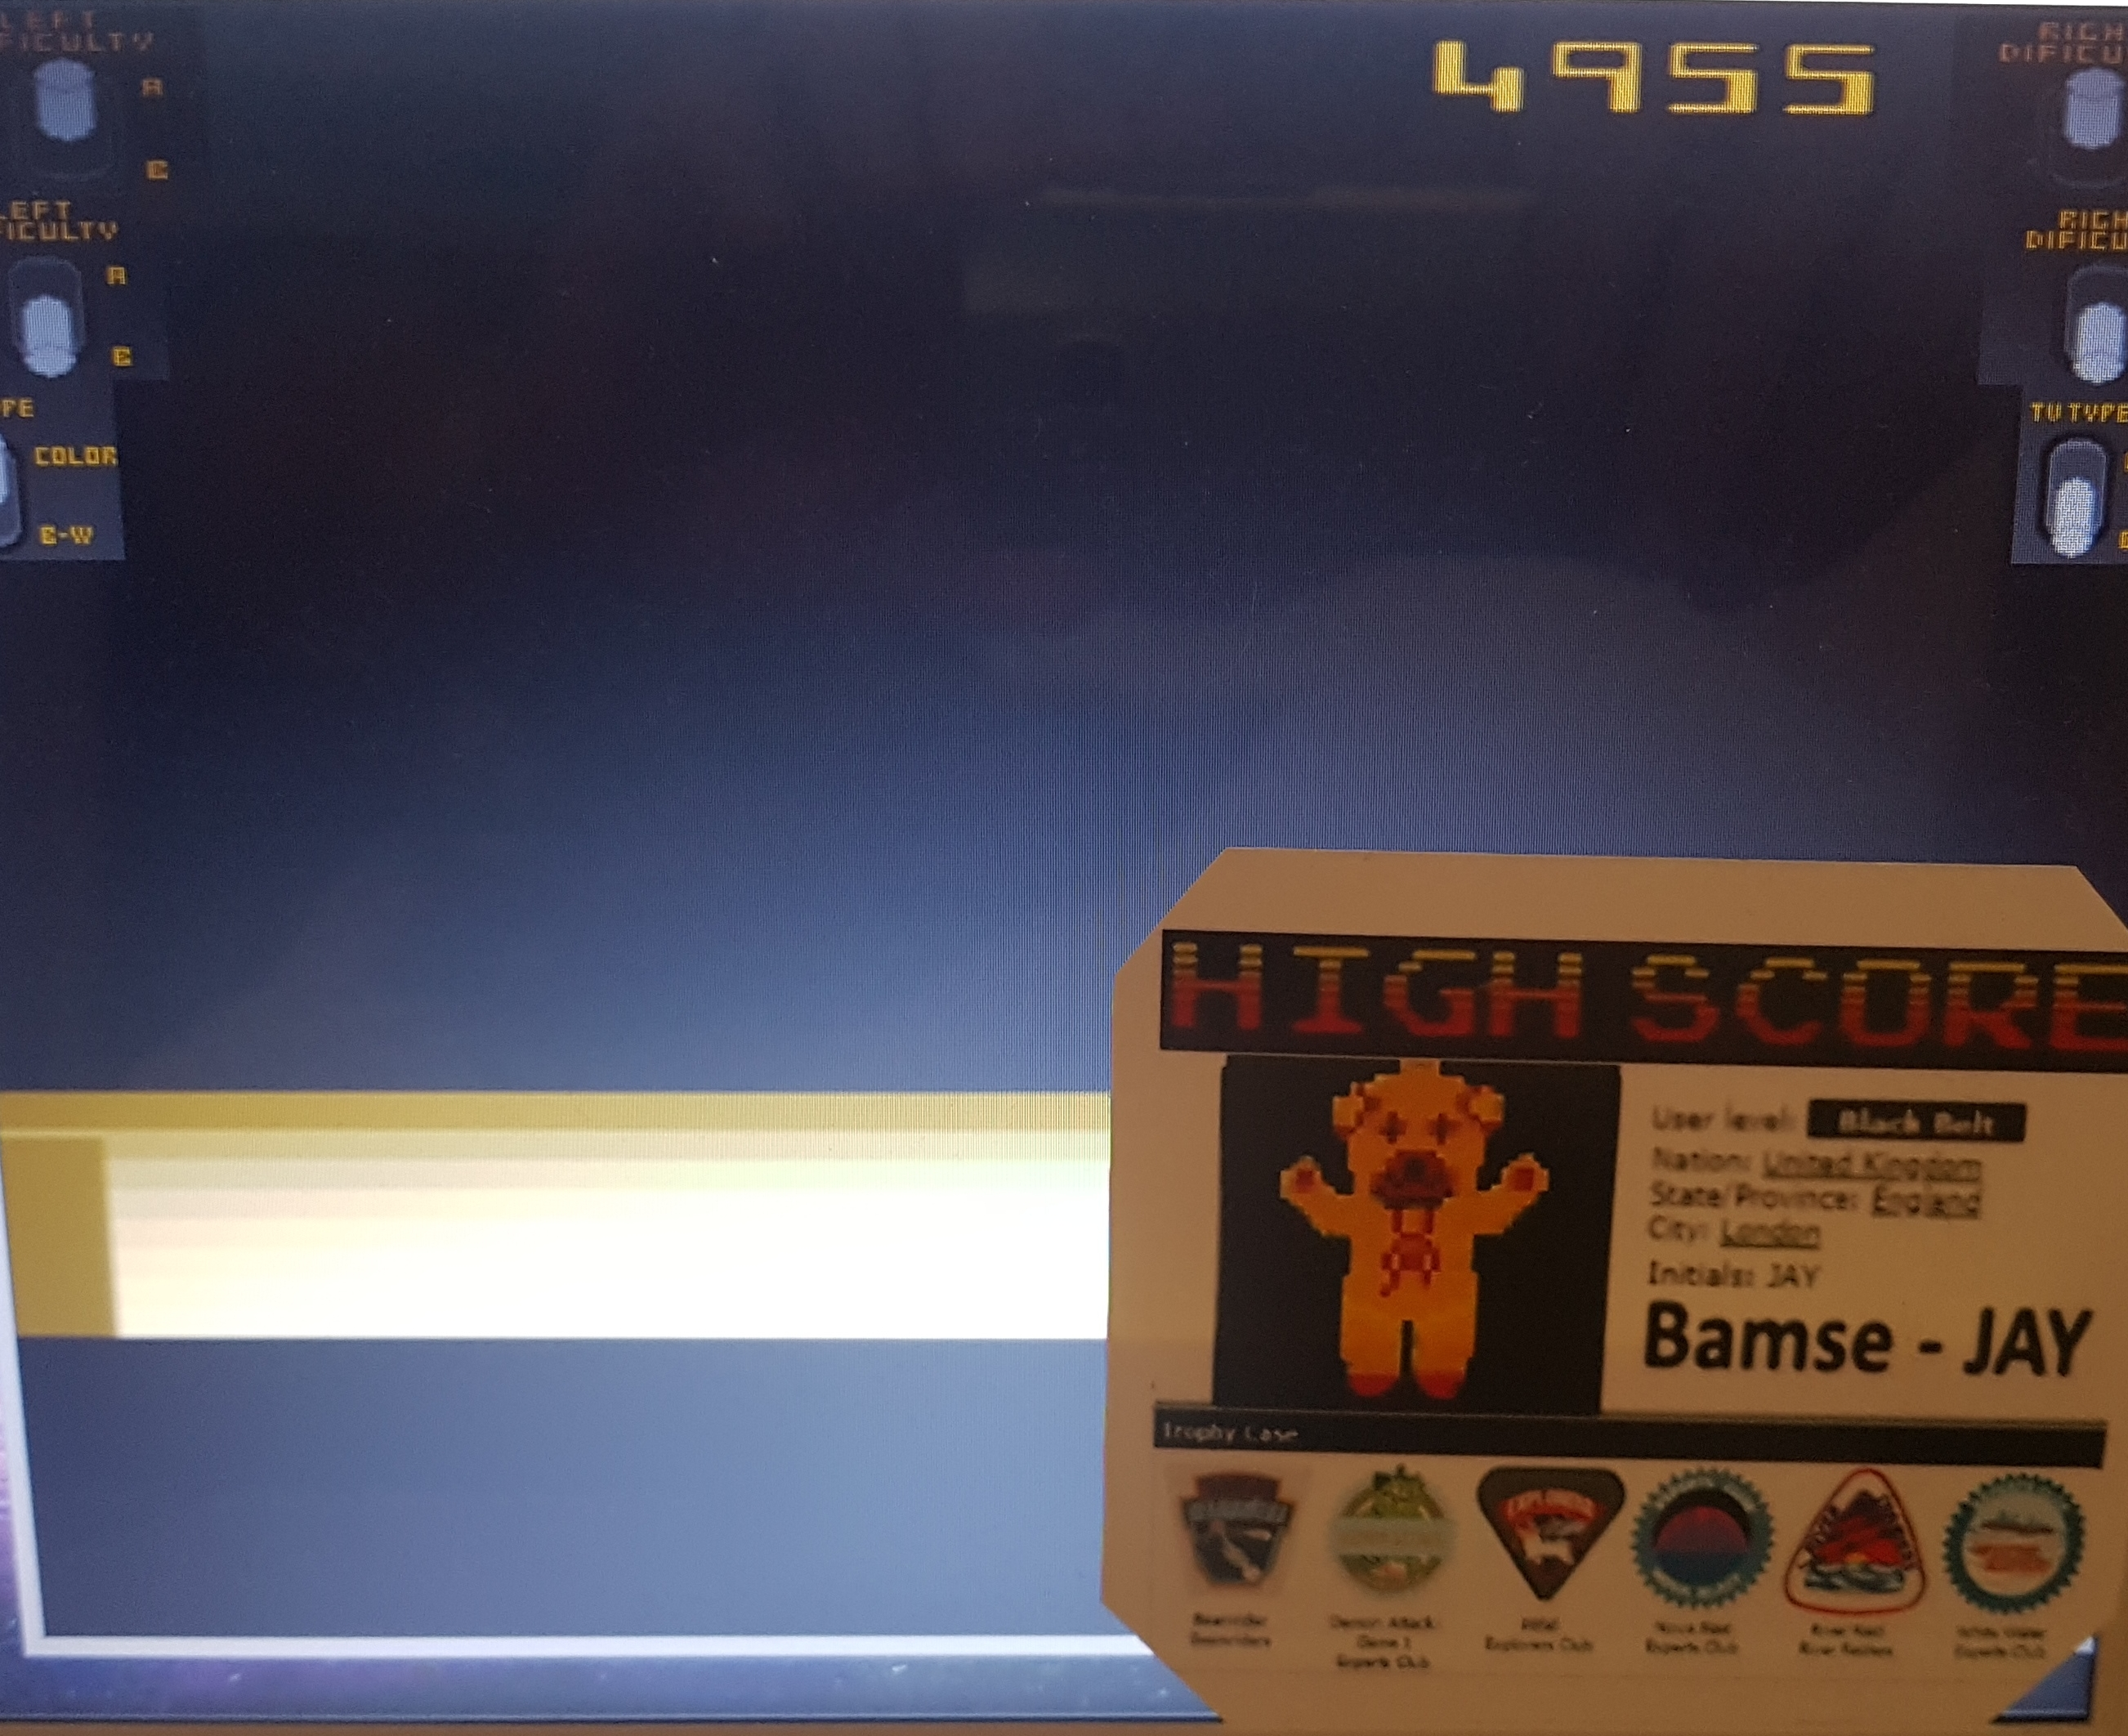 Bamse: Space Cavern (Atari 2600 Emulated Expert/A Mode) 4,955 points on 2019-10-30 13:49:00